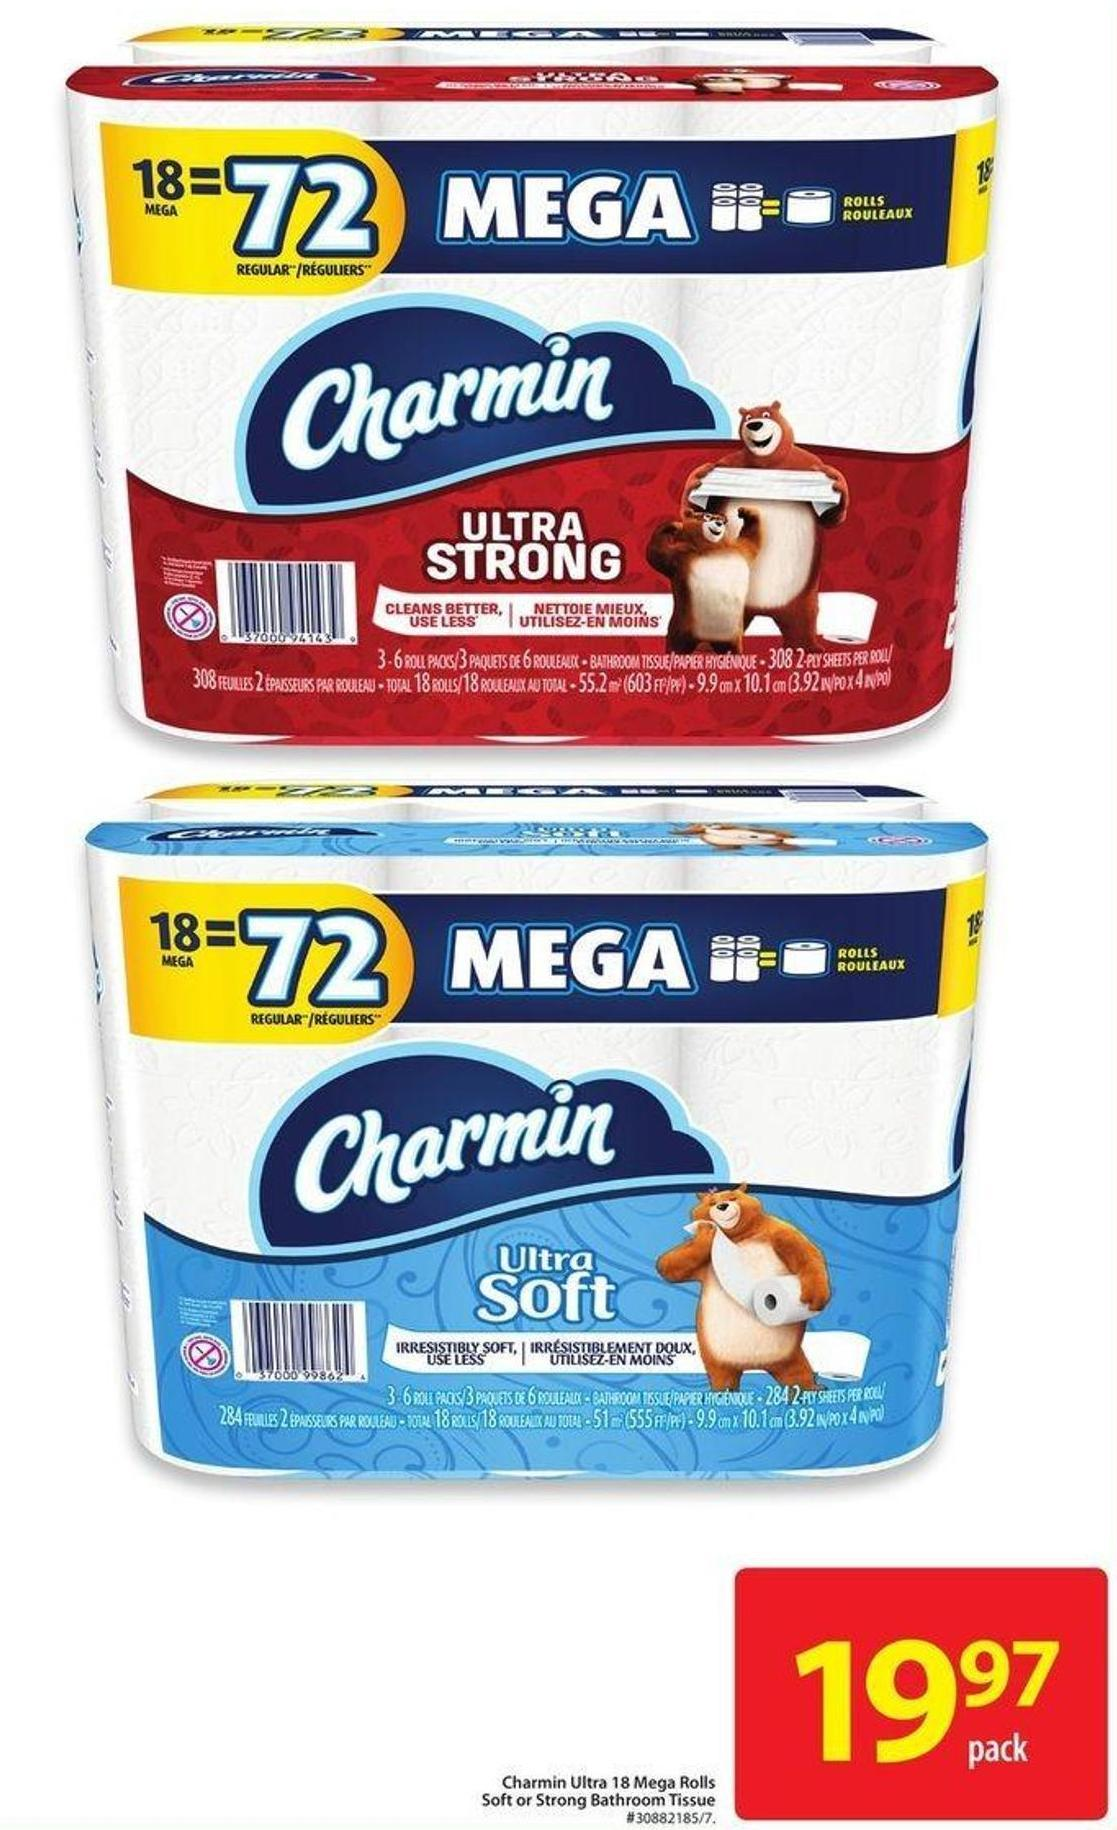 Charmin Ultra 18 Mega Rolls Soft or Strong Bathroom Tissue